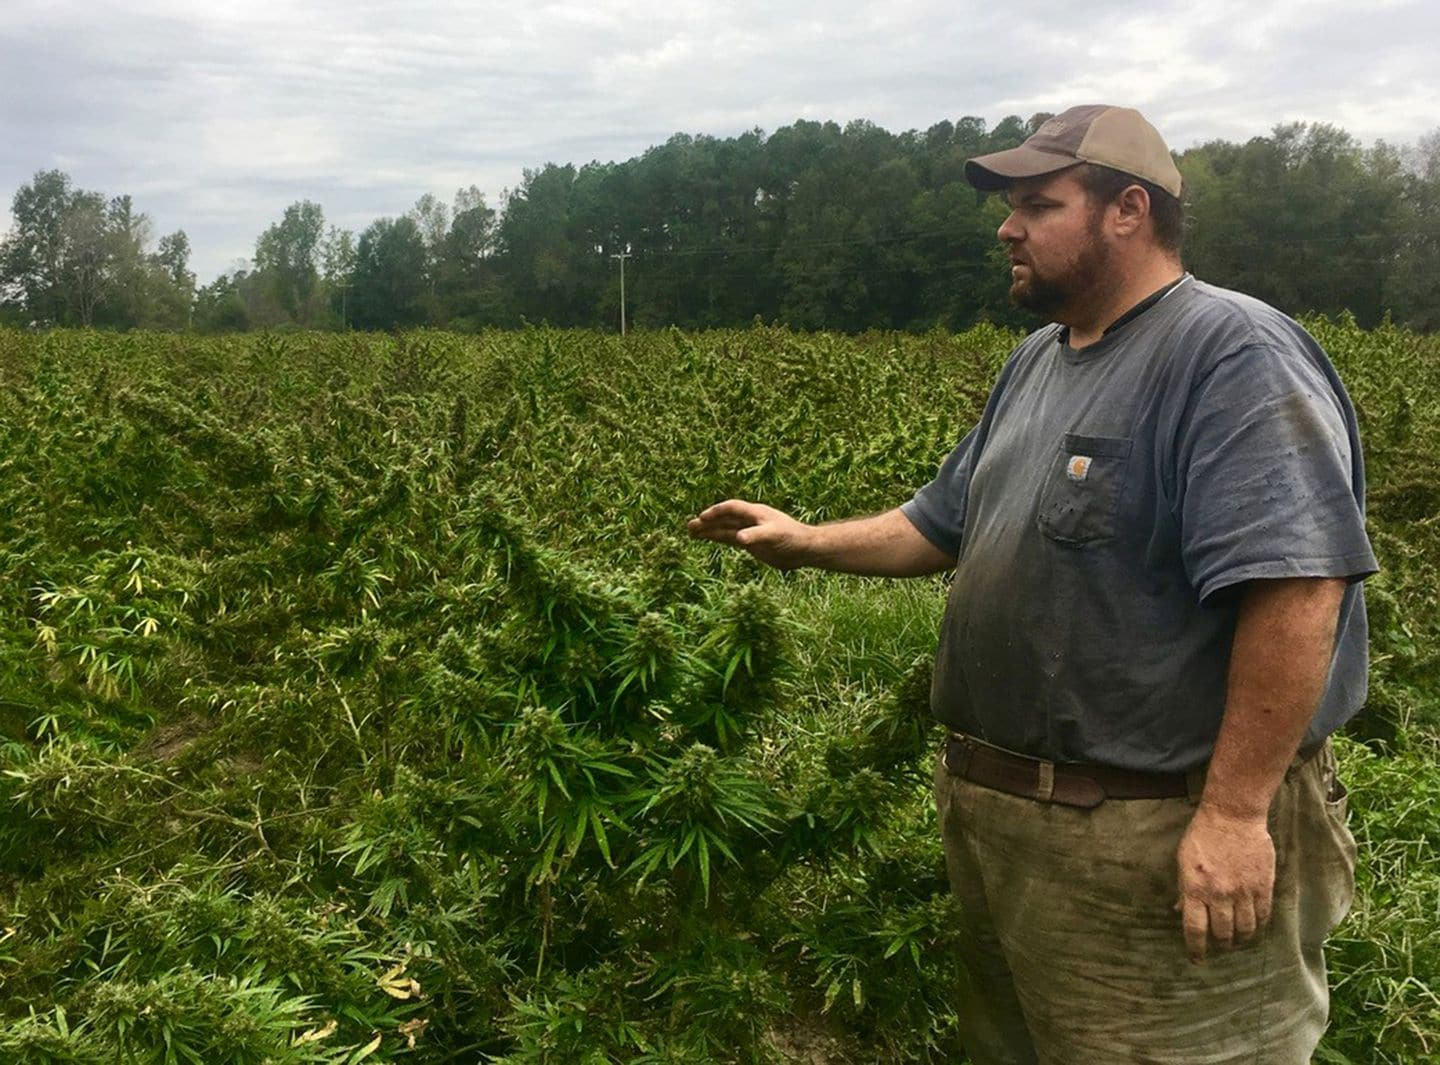 This farmer had a million-dollar hemp crop — until South Carolina bulldozed it - Washington Post